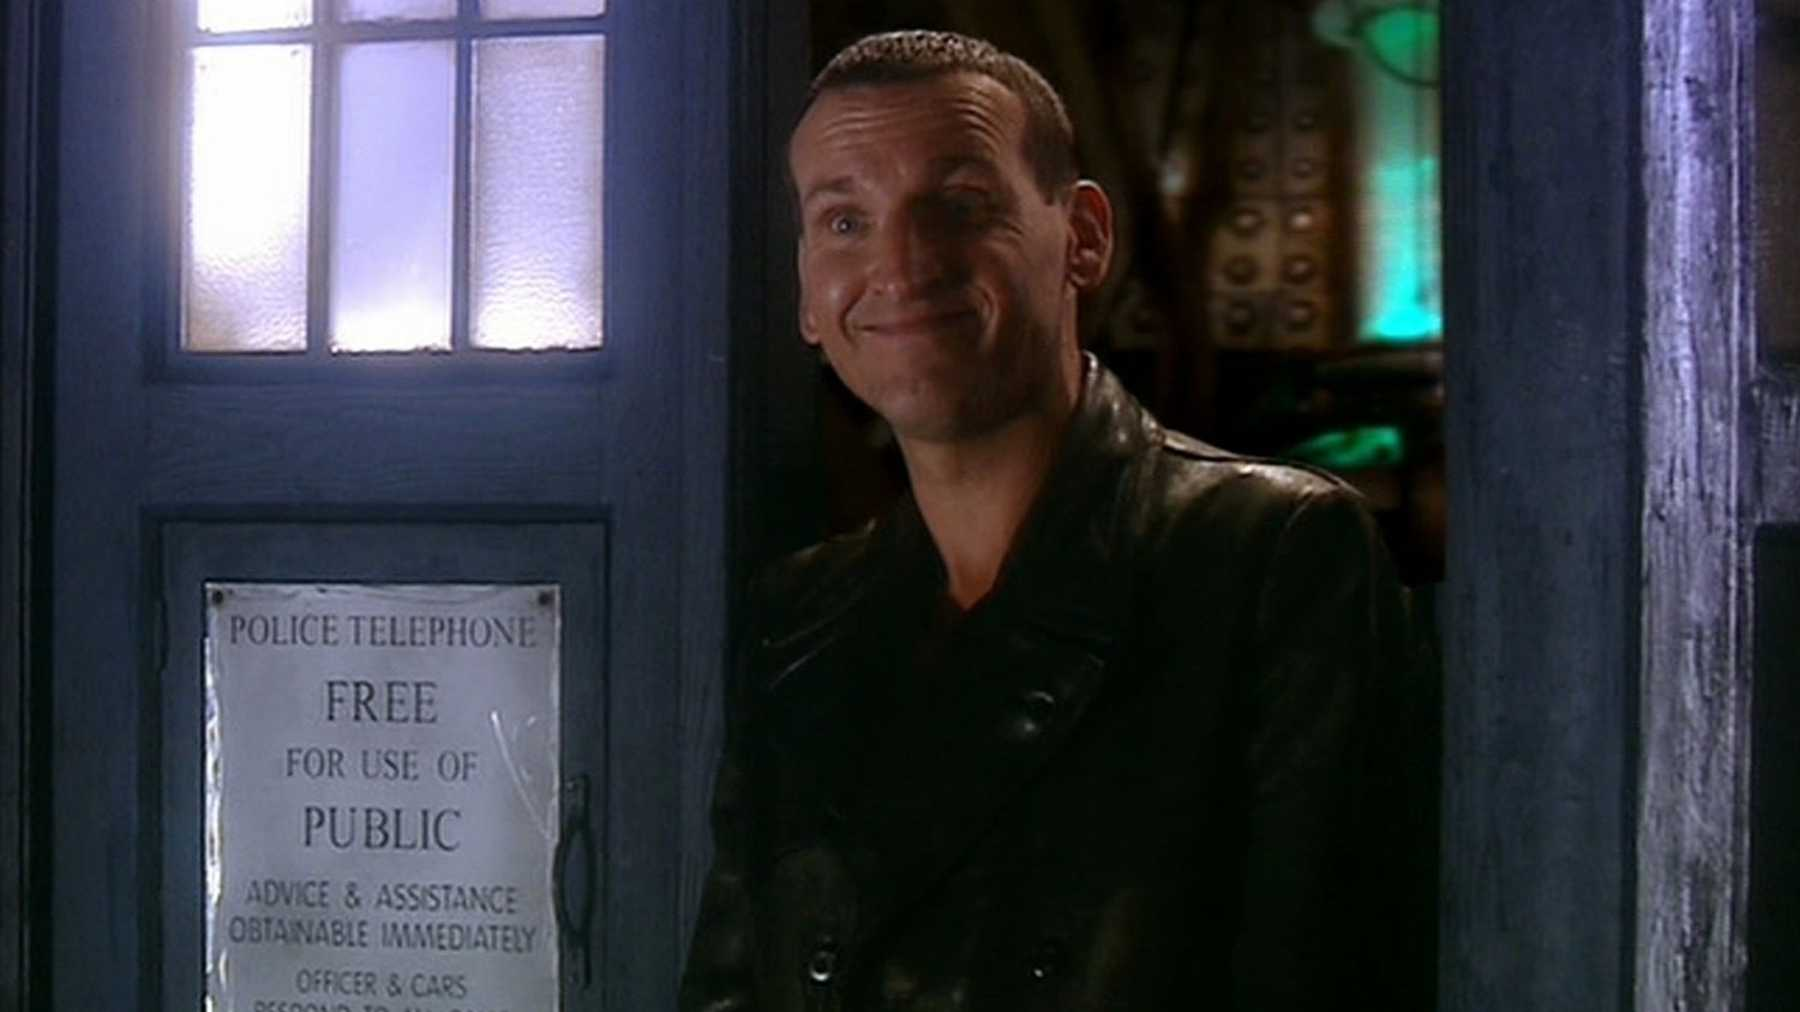 doctor-who-eccleston.jpg?quality=50&width=1800&ratio=16-9&resizeStyle=aspectfill&format=jpg